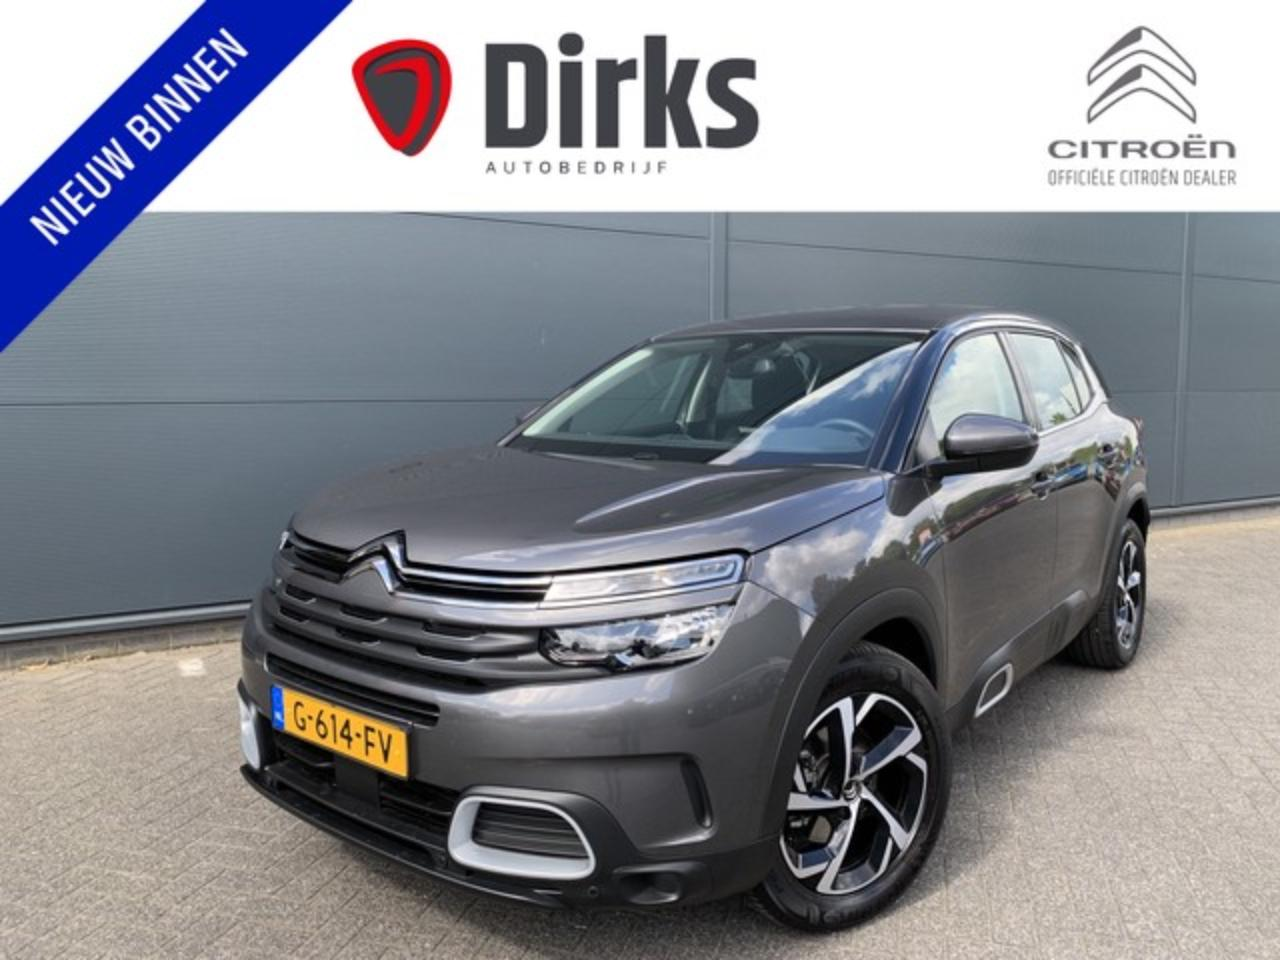 Citroën C5 AIRCROSS 1.6 EAT8 Business 180PK AUTOMAAT NAVI/CAMERA/CLIMA